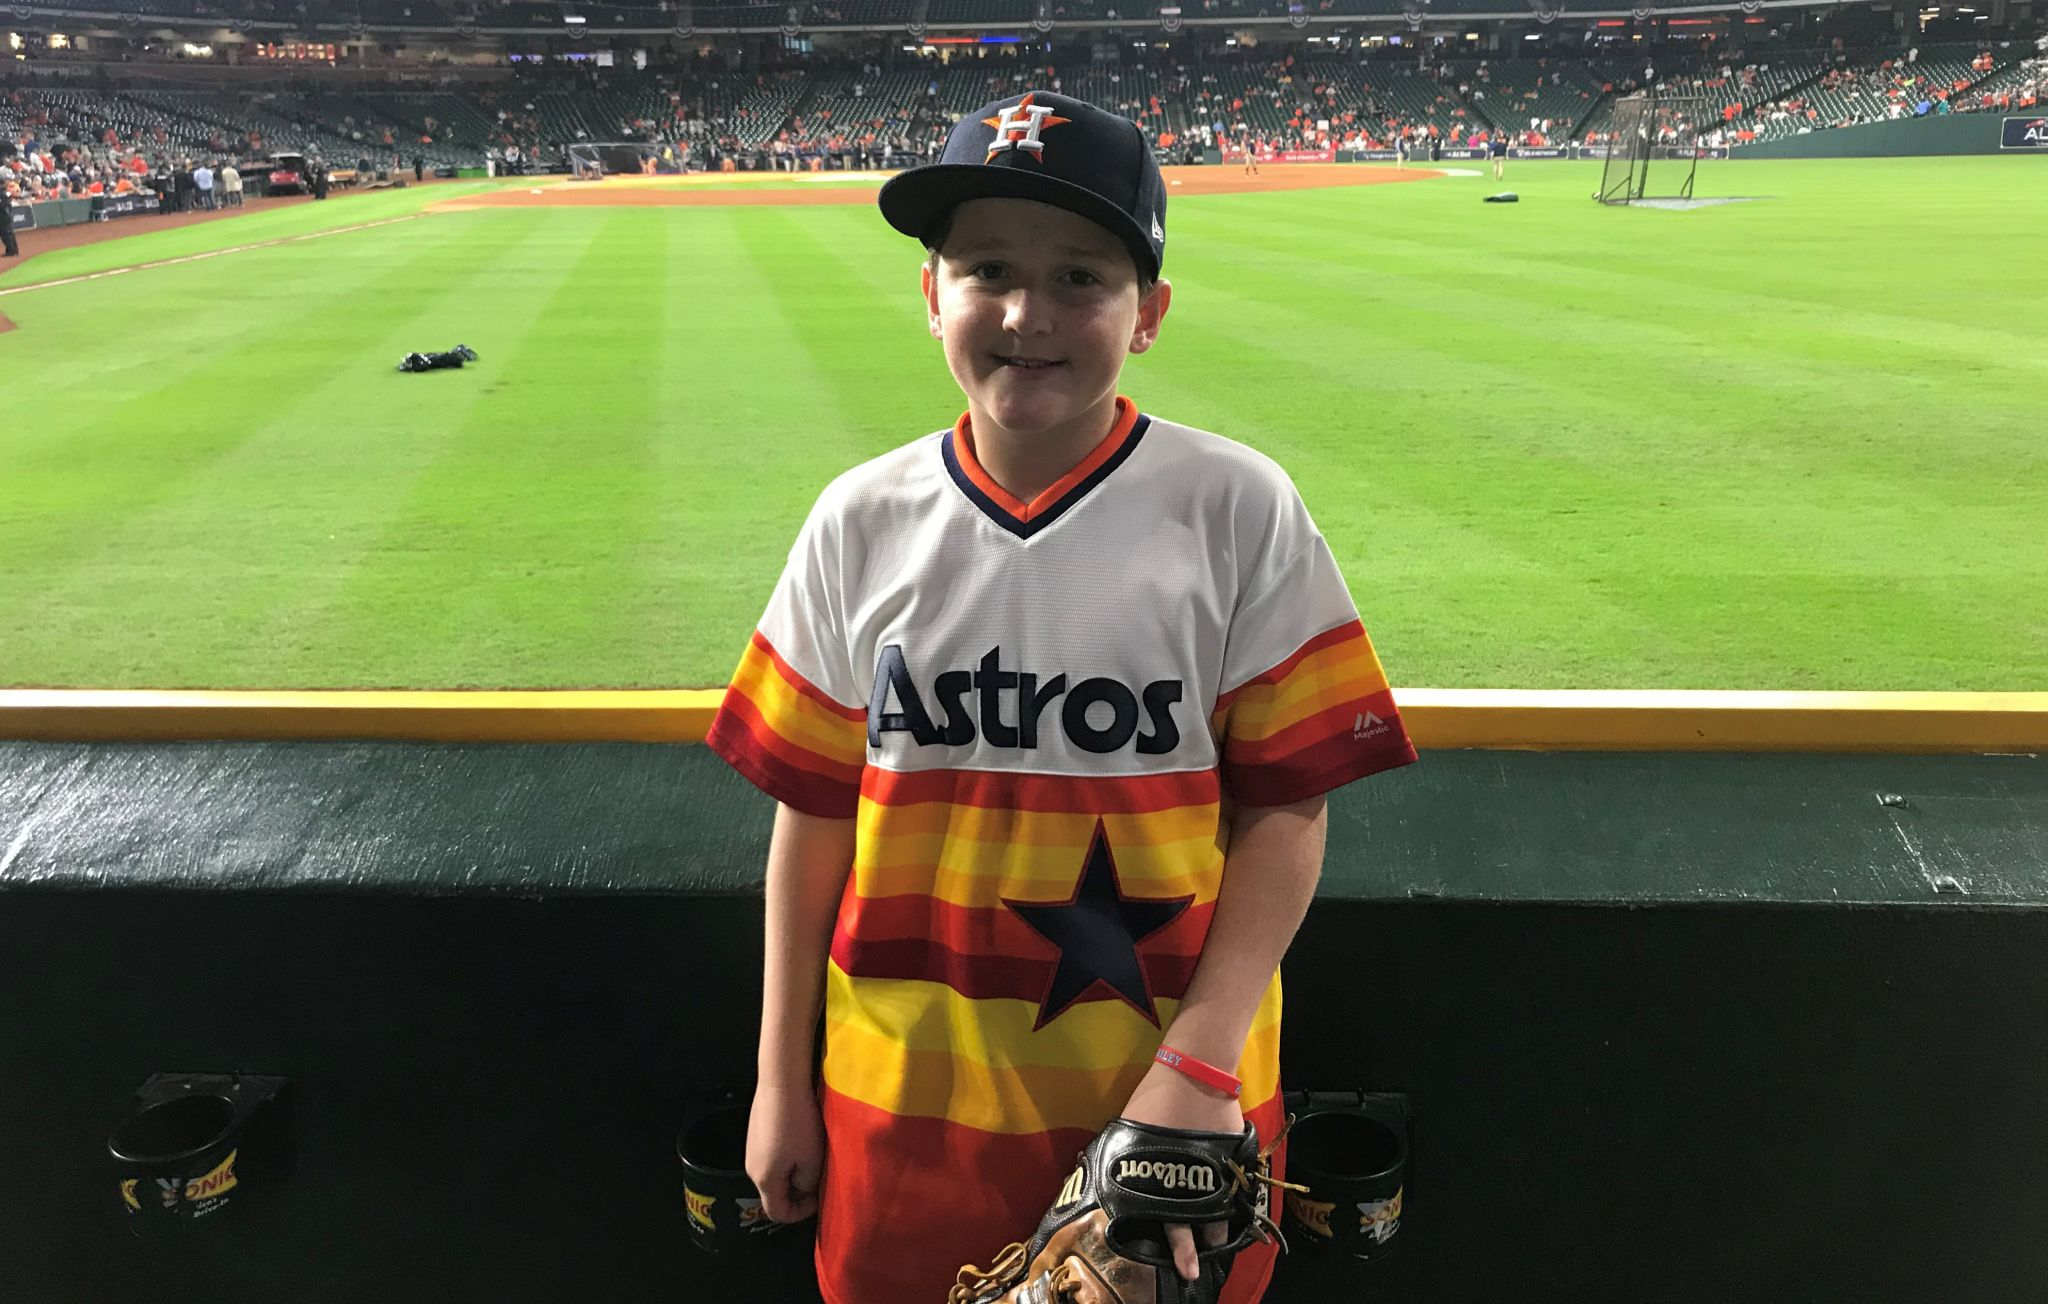 Astros have the right fan in 'interference' seat for Game 5